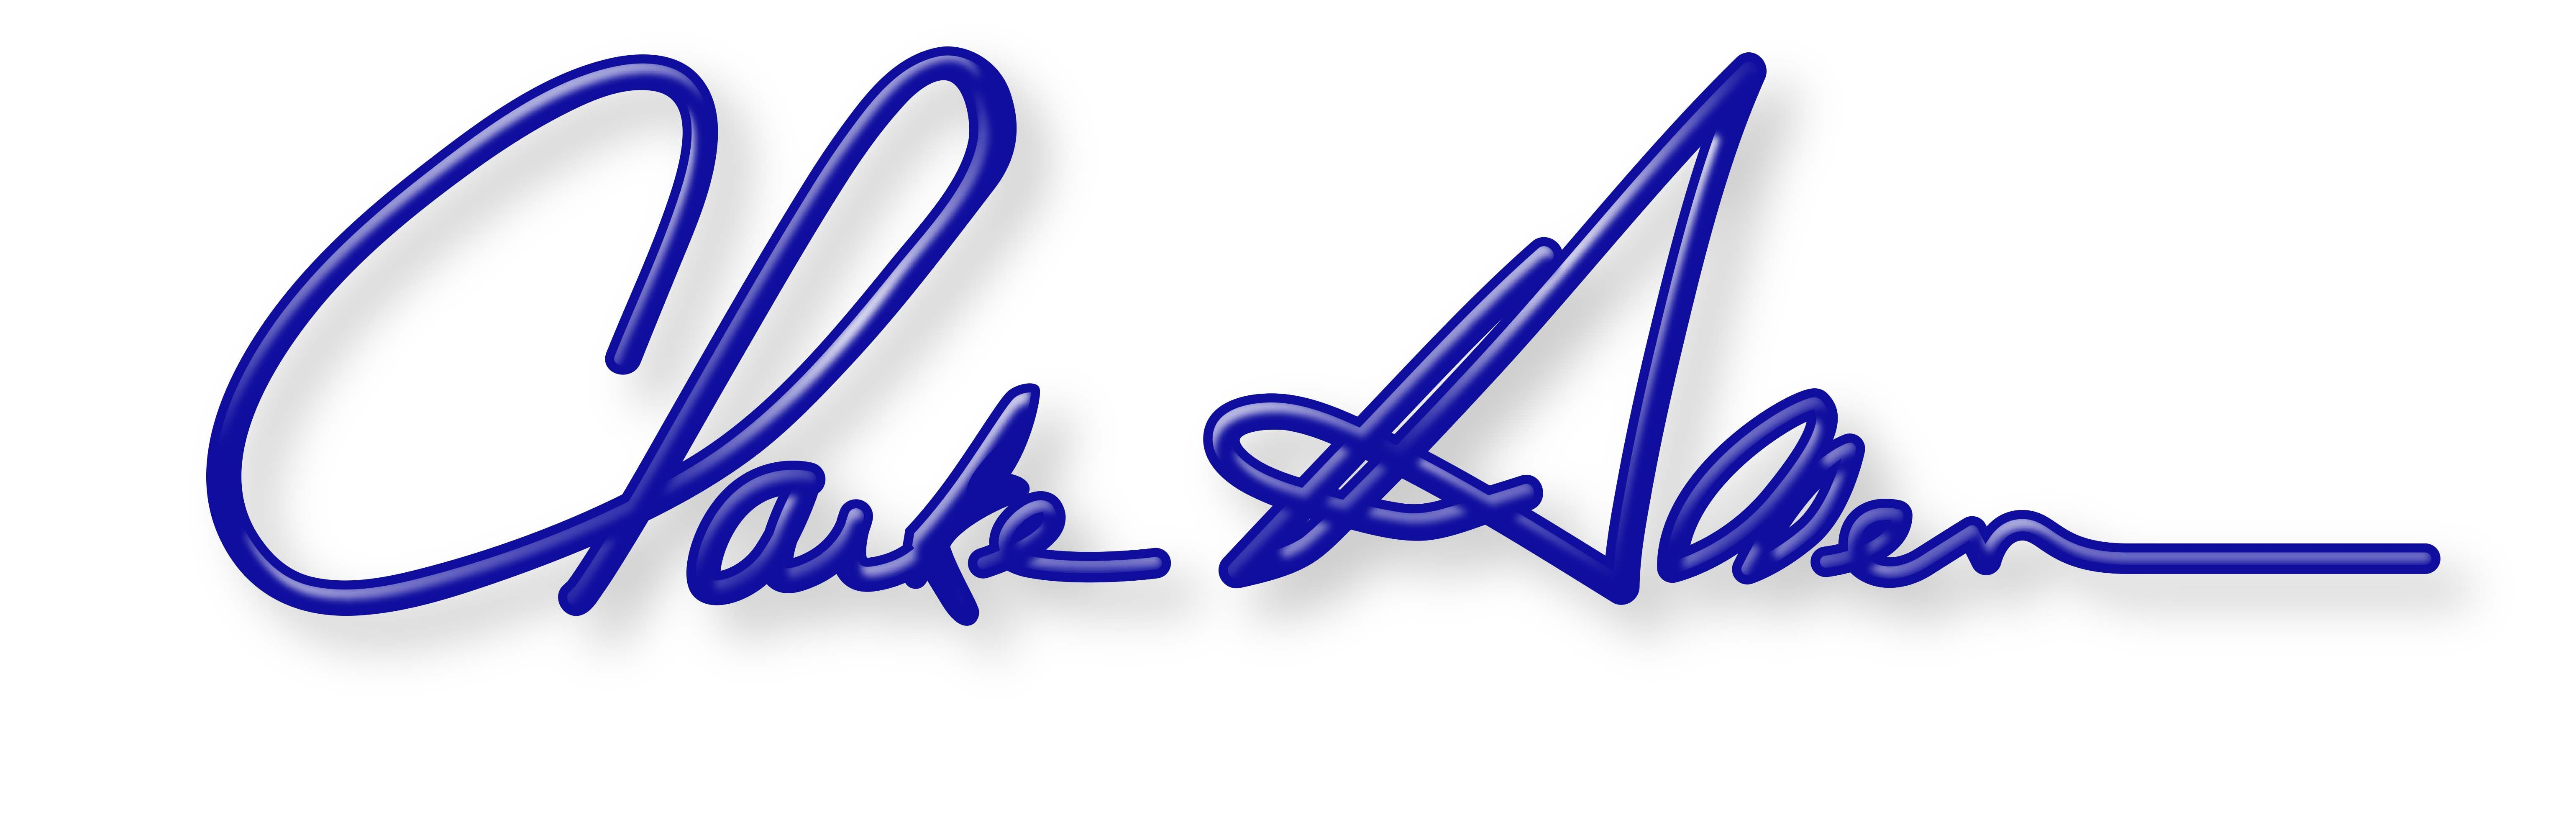 Clarke Allen The Author & Speaker Logo